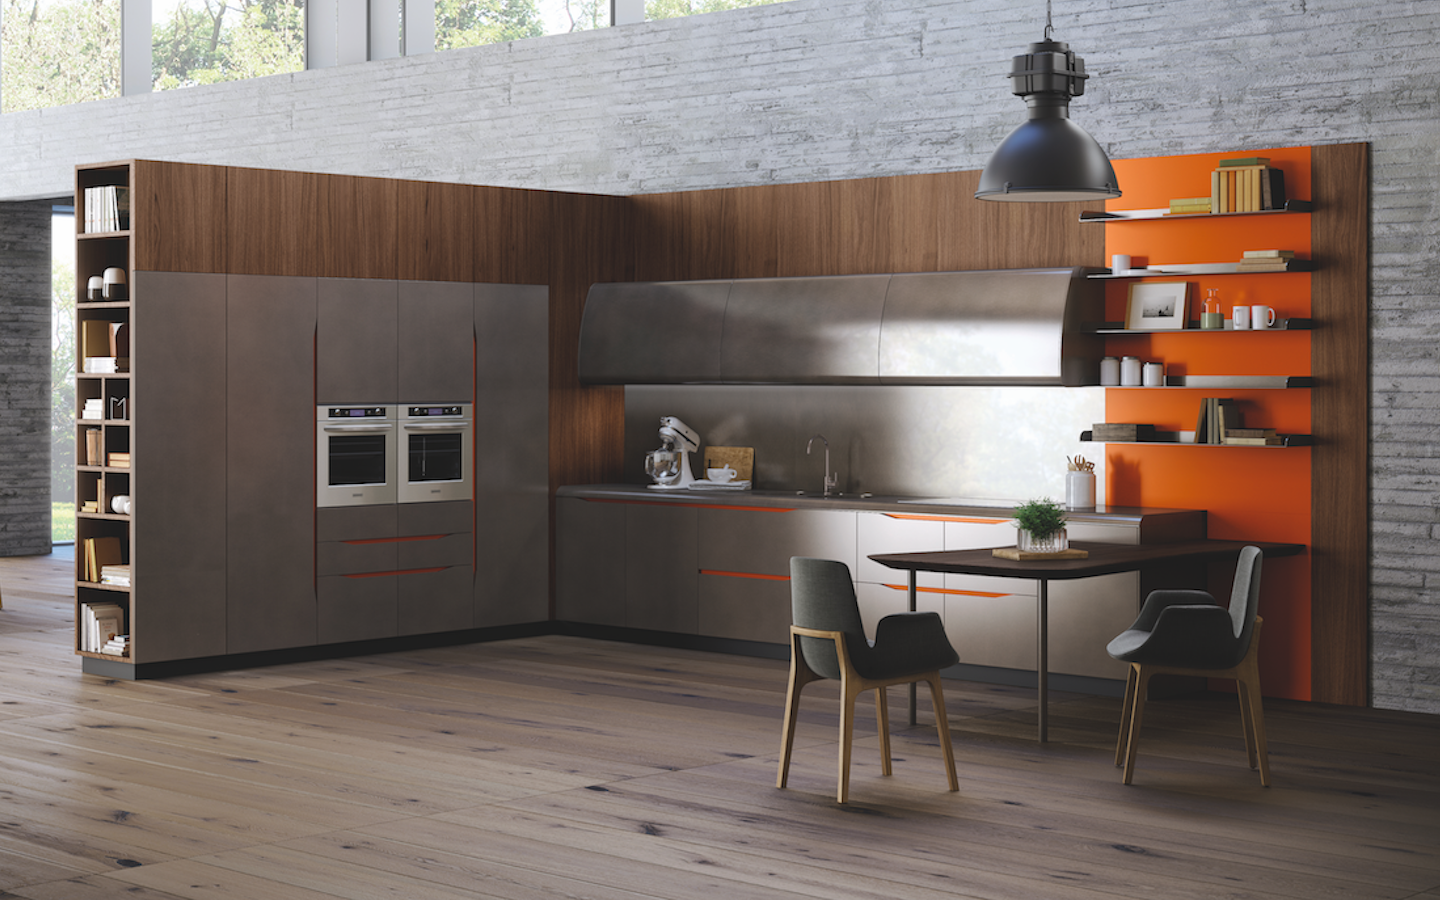 Here's a kitchen available in Malaysia that's inspired by the Lamborghini Miura